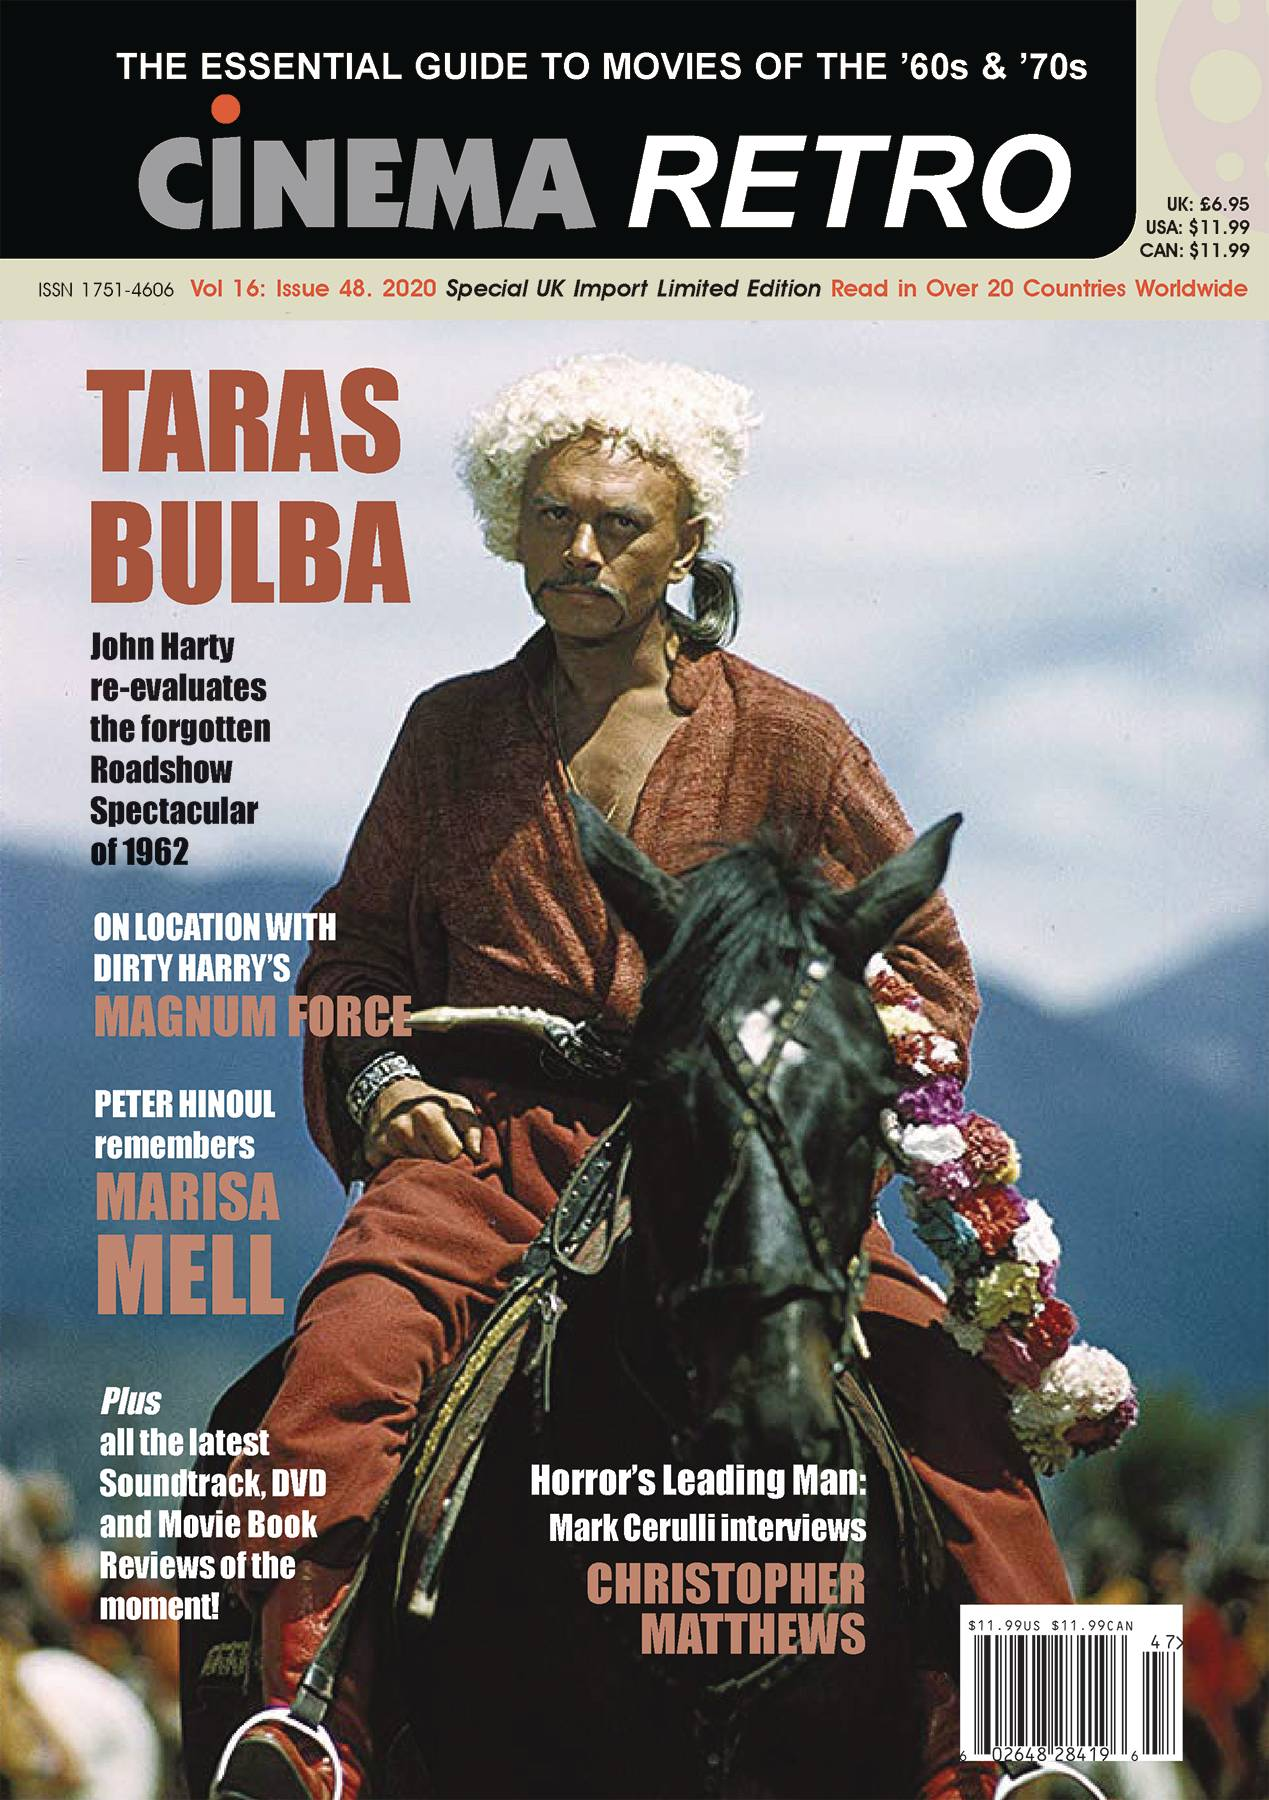 CINEMA RETRO